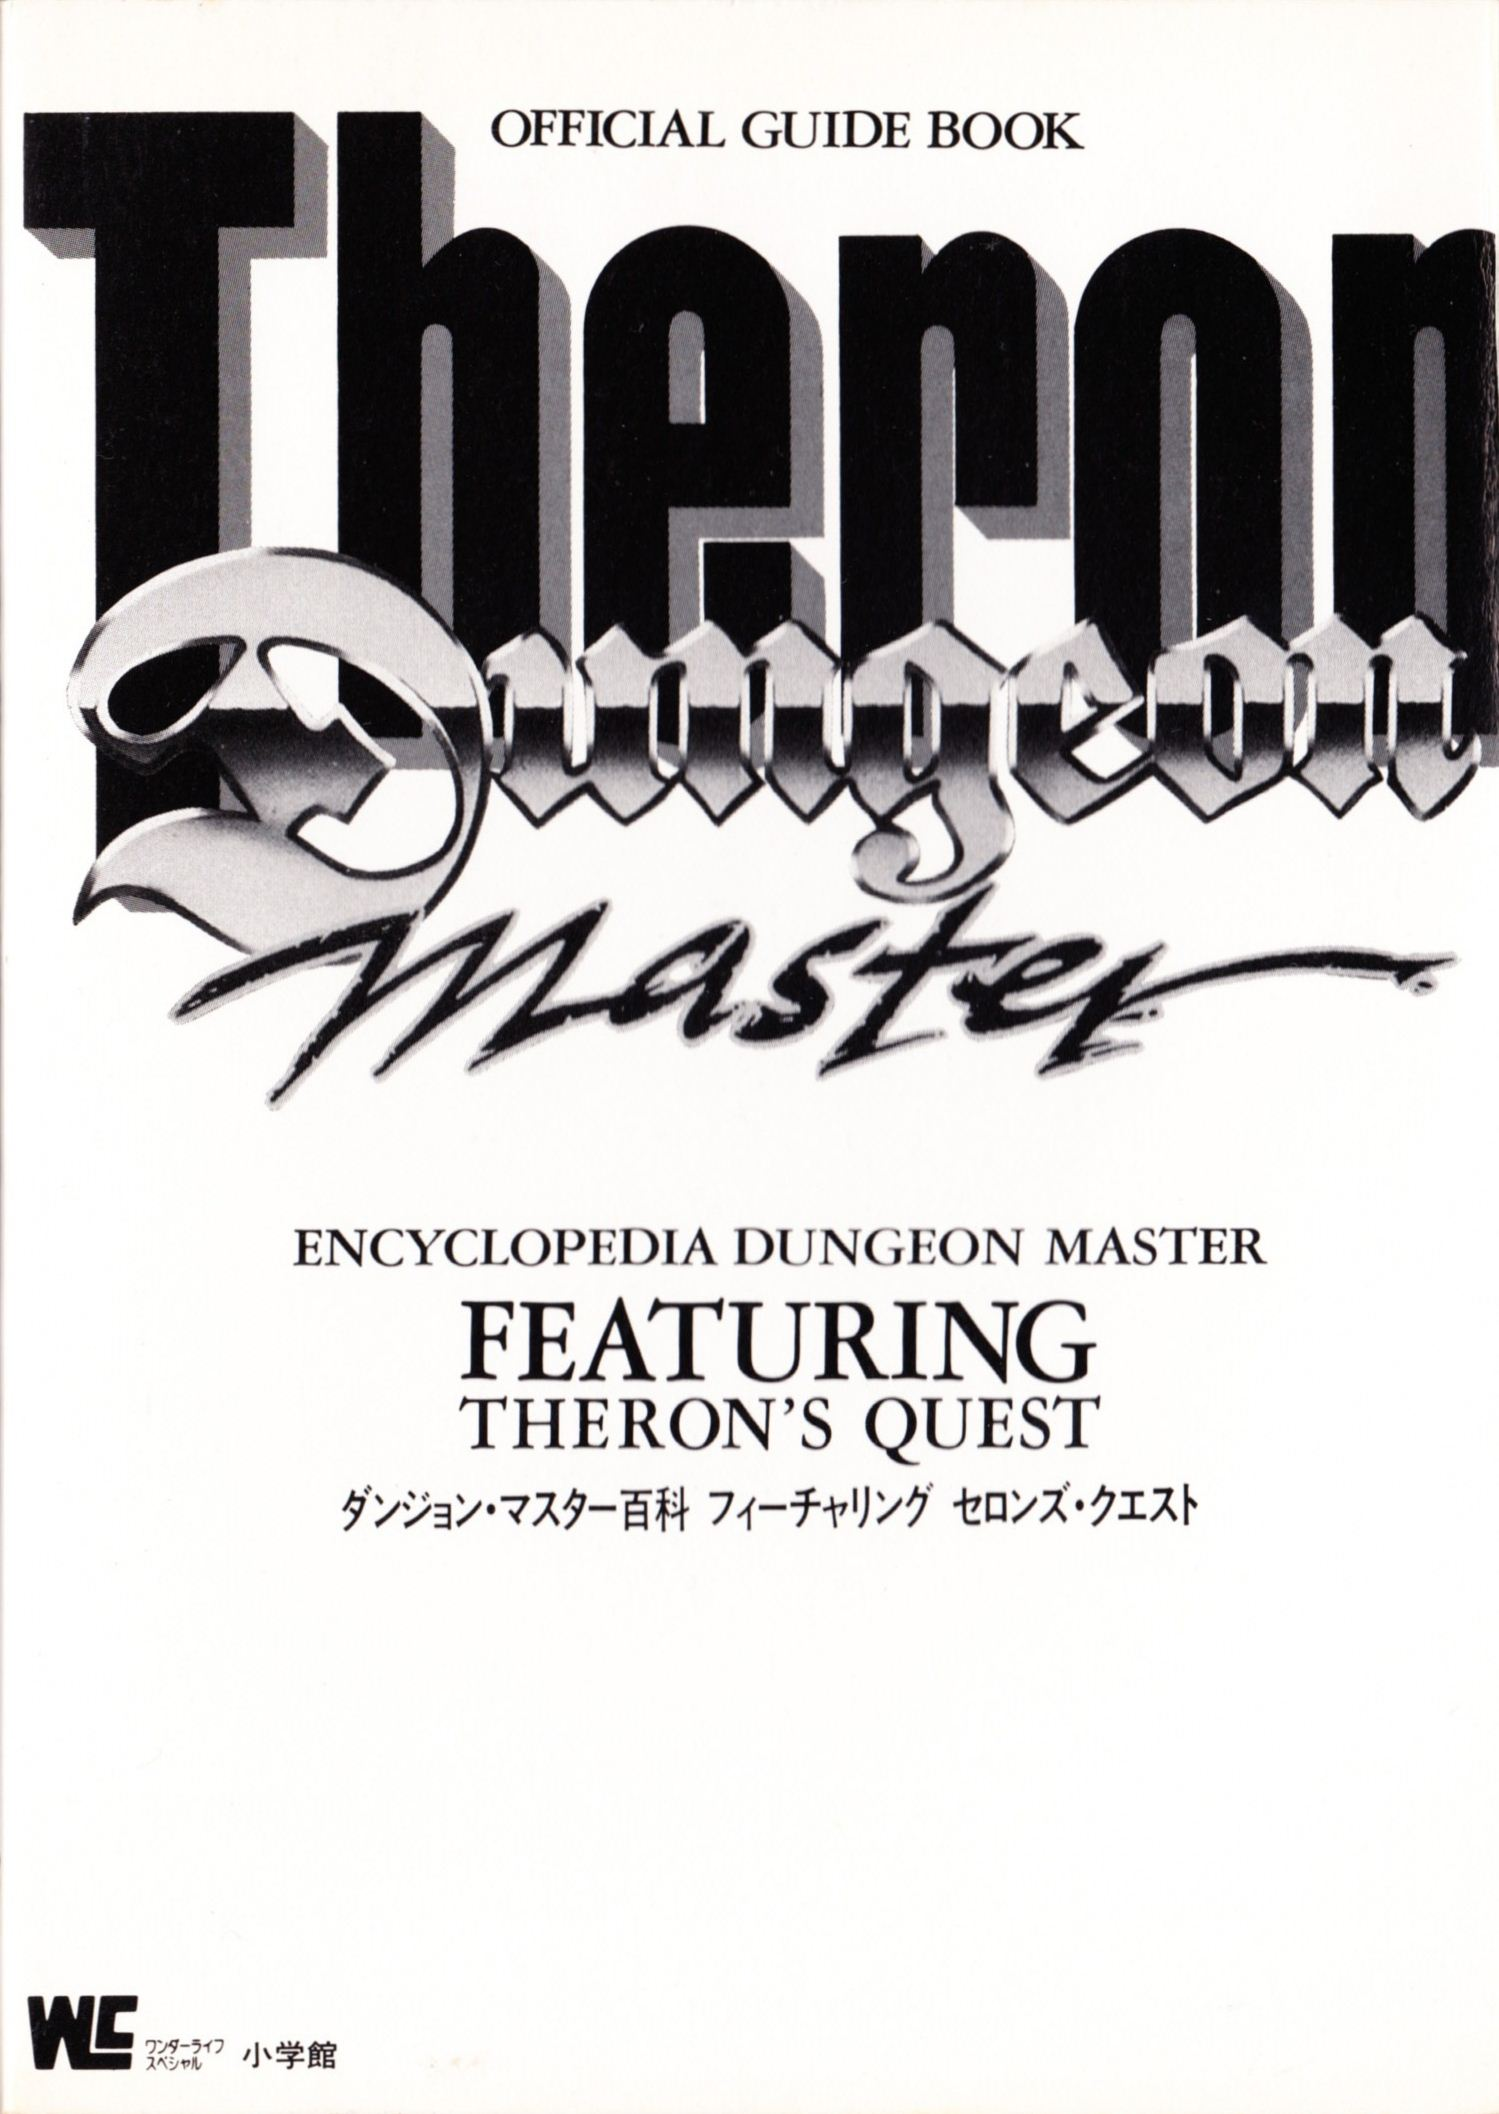 Hint Book - Encyclopedia Dungeon Master Featuring Theron&amp;#039;s Quest - JP - Cover - Front - Scan